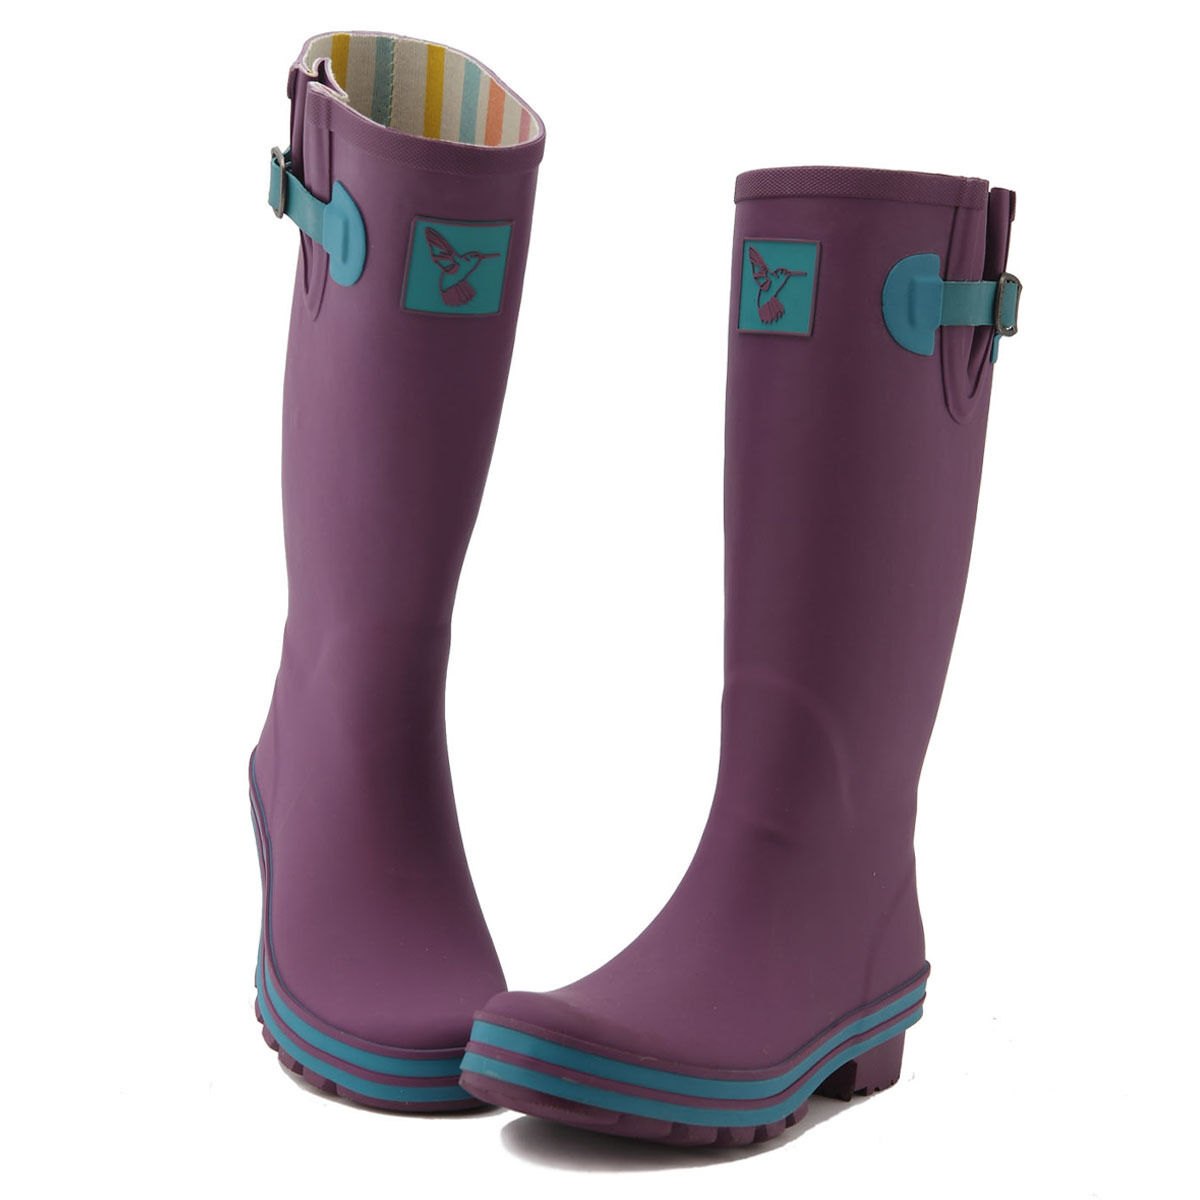 Purple Rubber Rain Boots Gumboots Wellies For Women From Evercreatures UK Brand